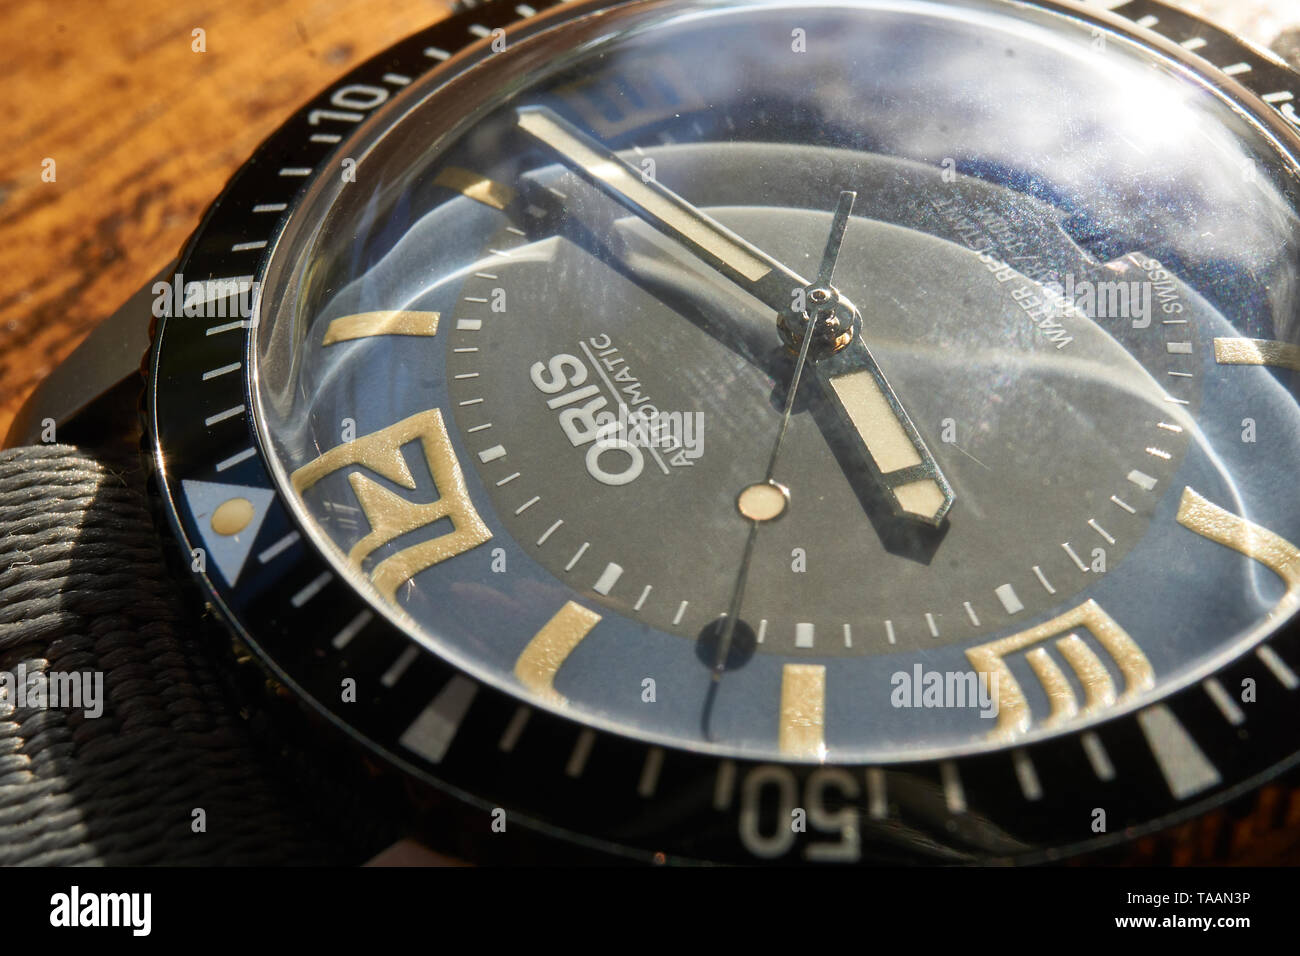 images of the oris sixty five heritage diver Stock Photo